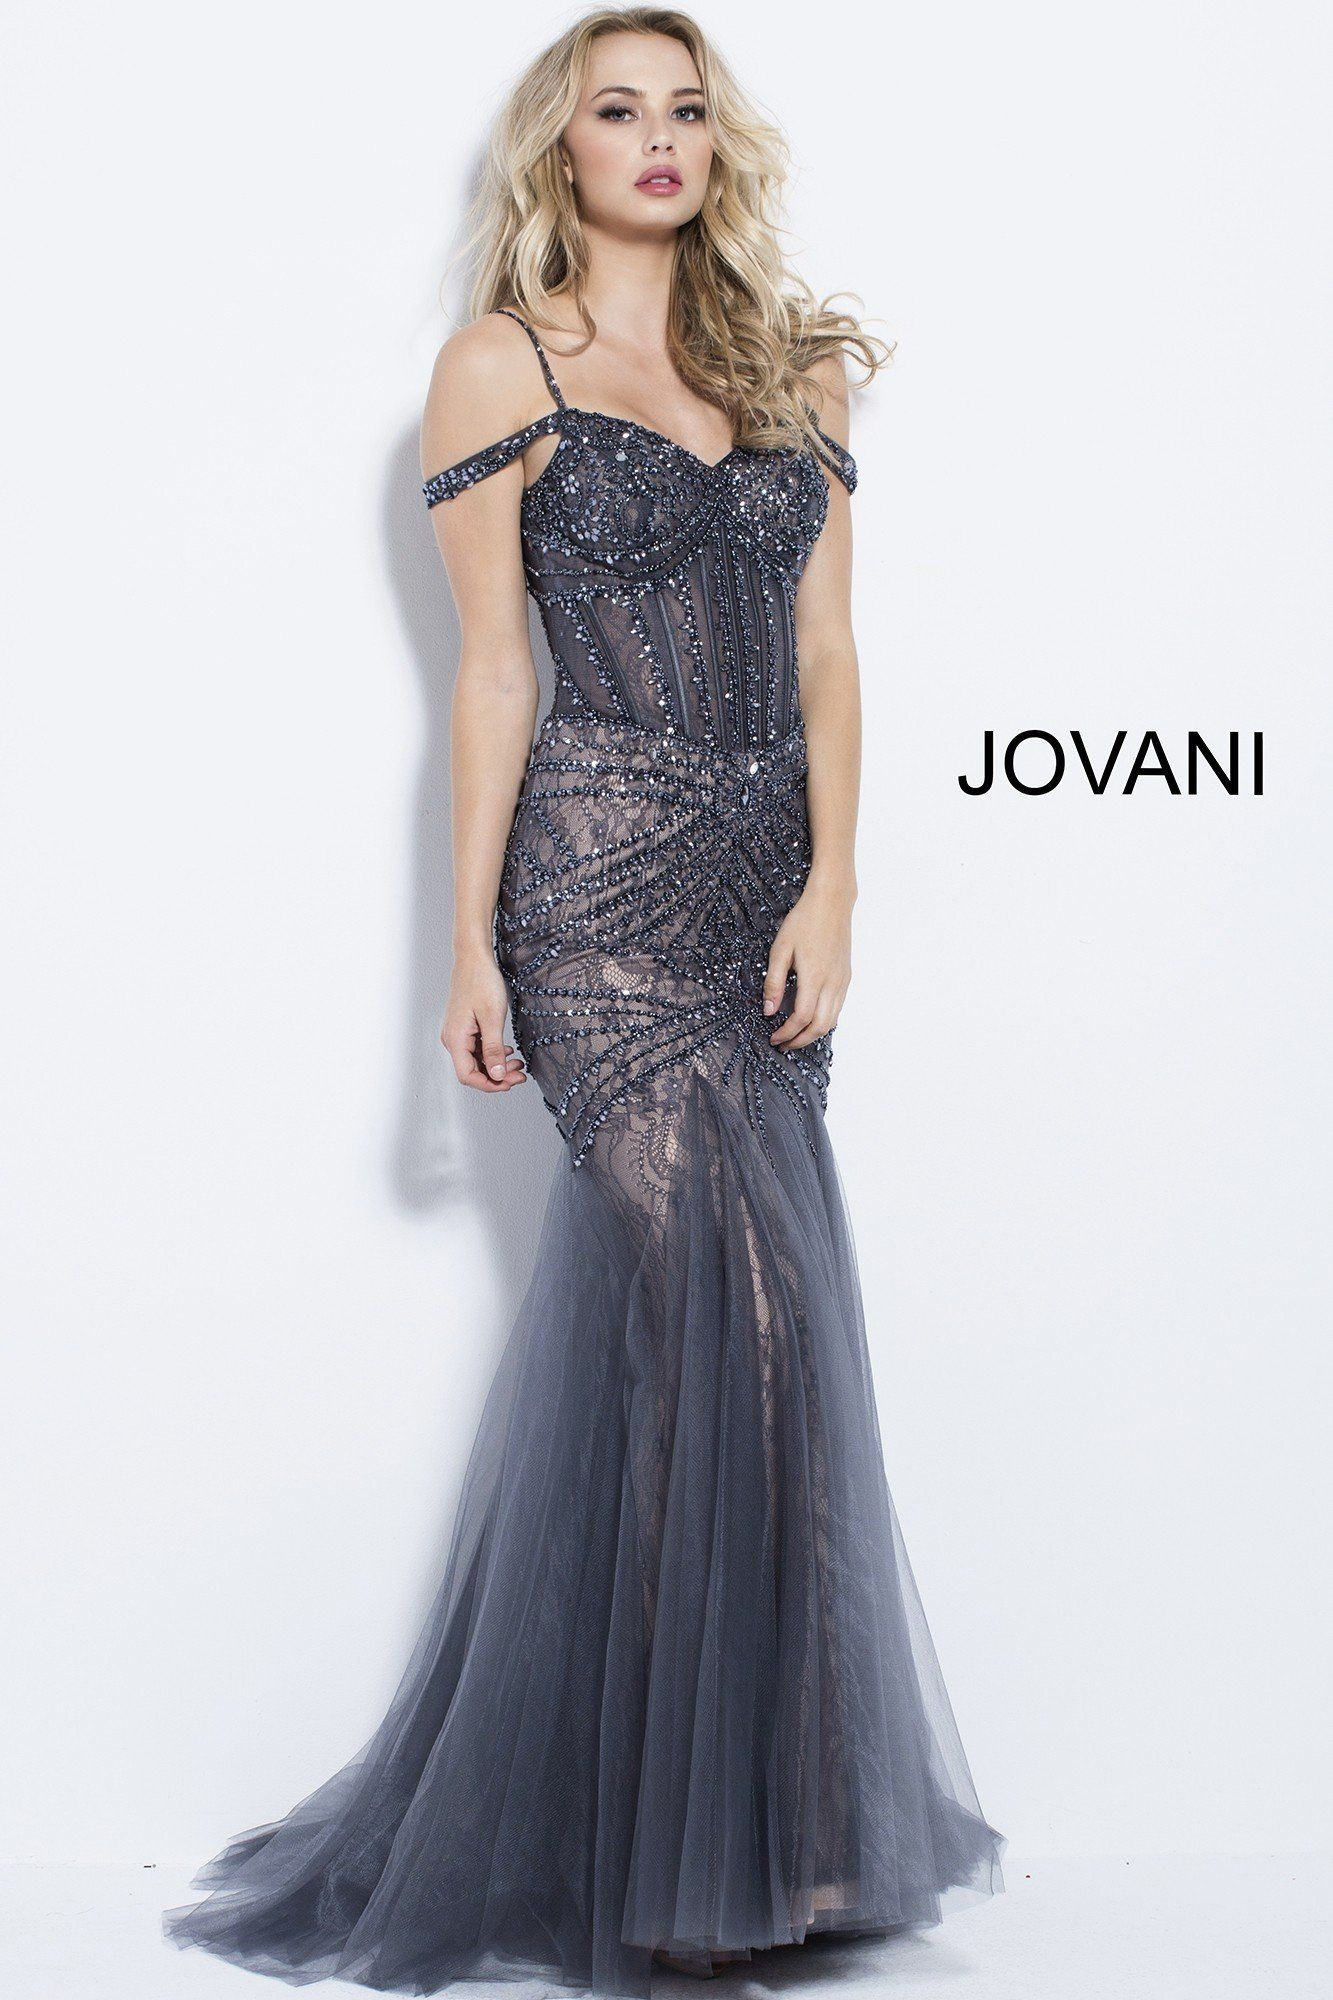 Jovani beaded coldshoulder corset gown in ΔŦŦuacŇŦƗØŇ